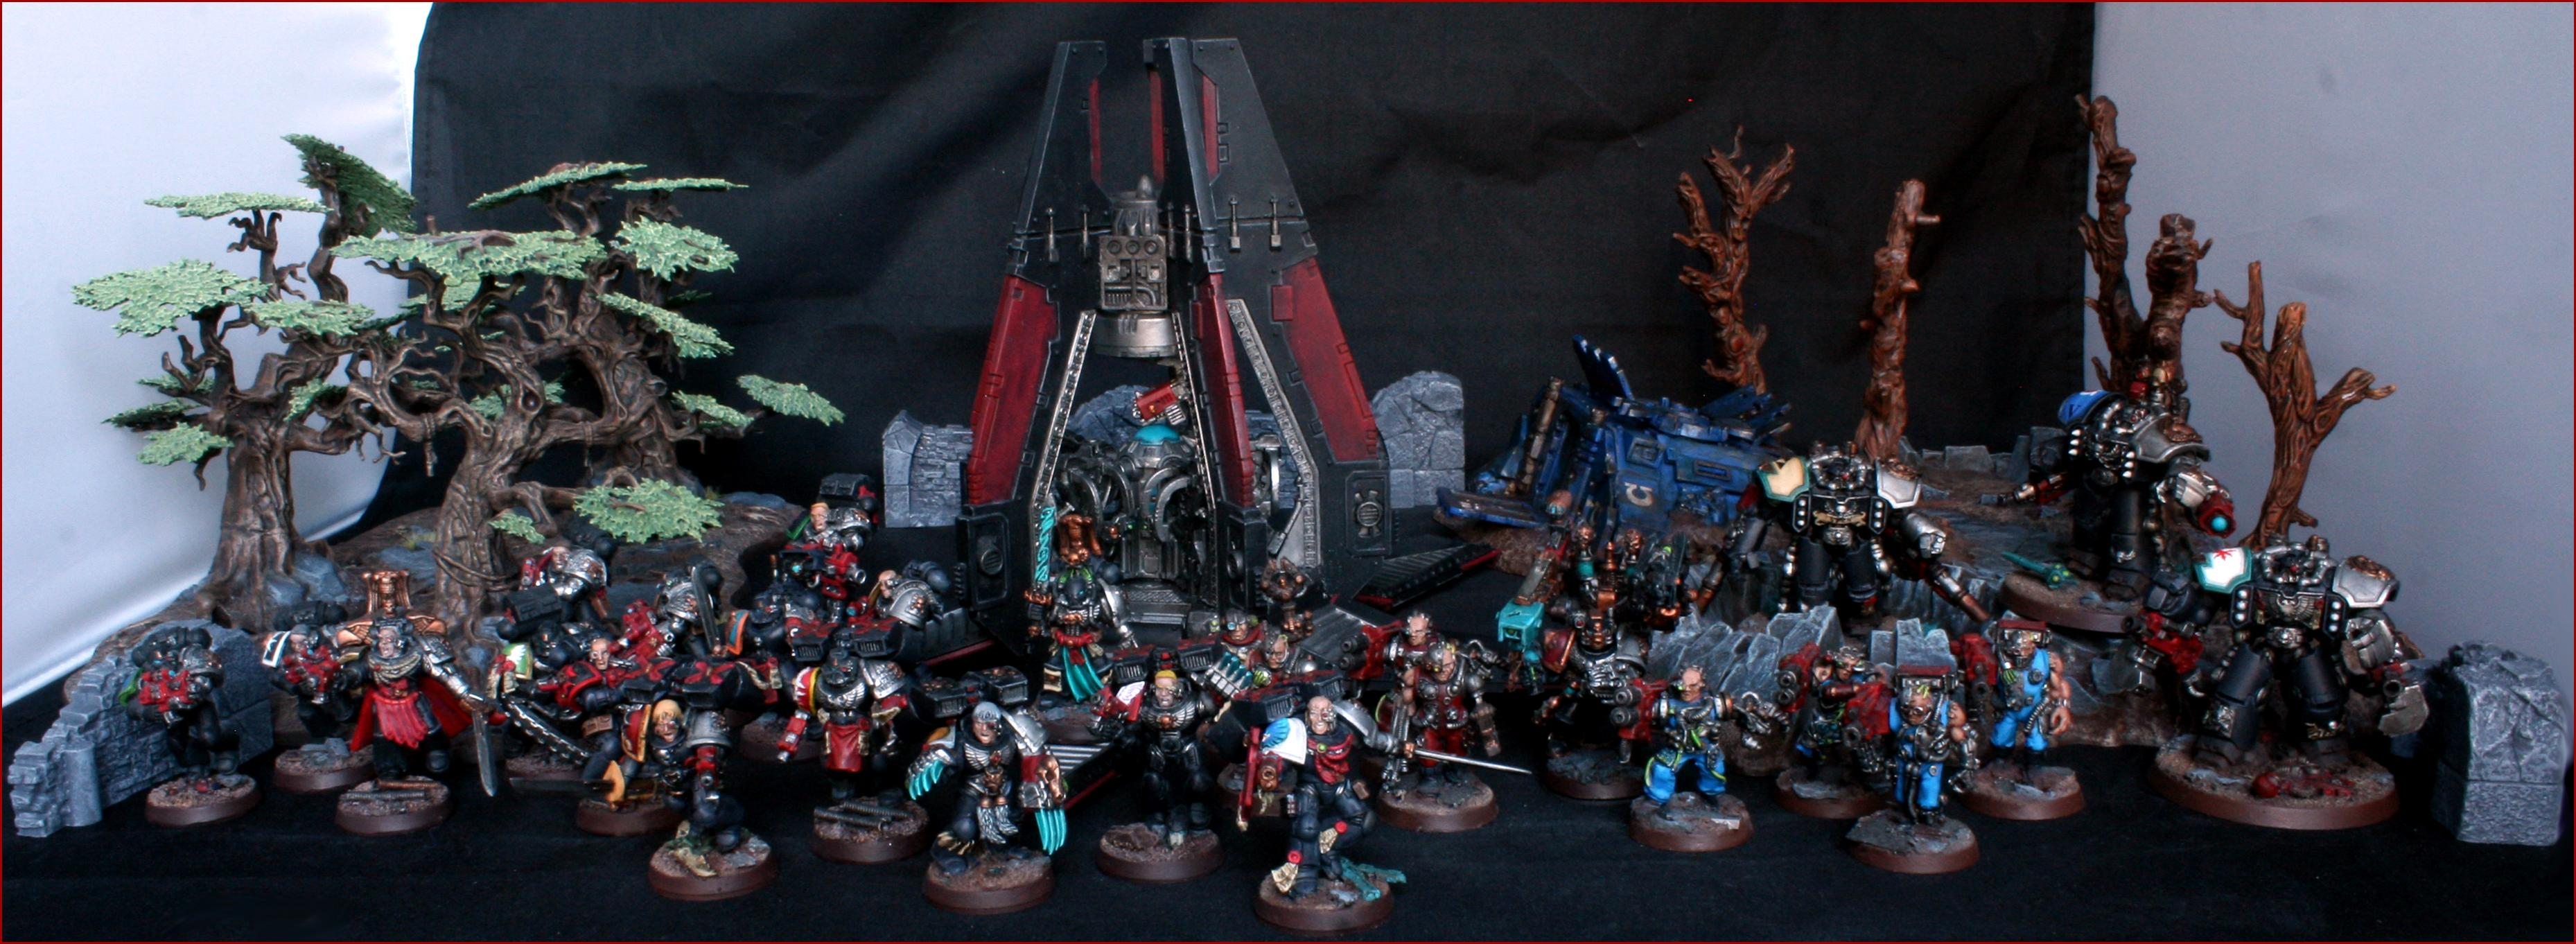 Angel, Arkaal, Blood, Centurion, Dark, Death, Drop, Pod, Servitors, Space, Space Marines, Techmarine, Ultramarines, Vanguard, Watch, Wolve